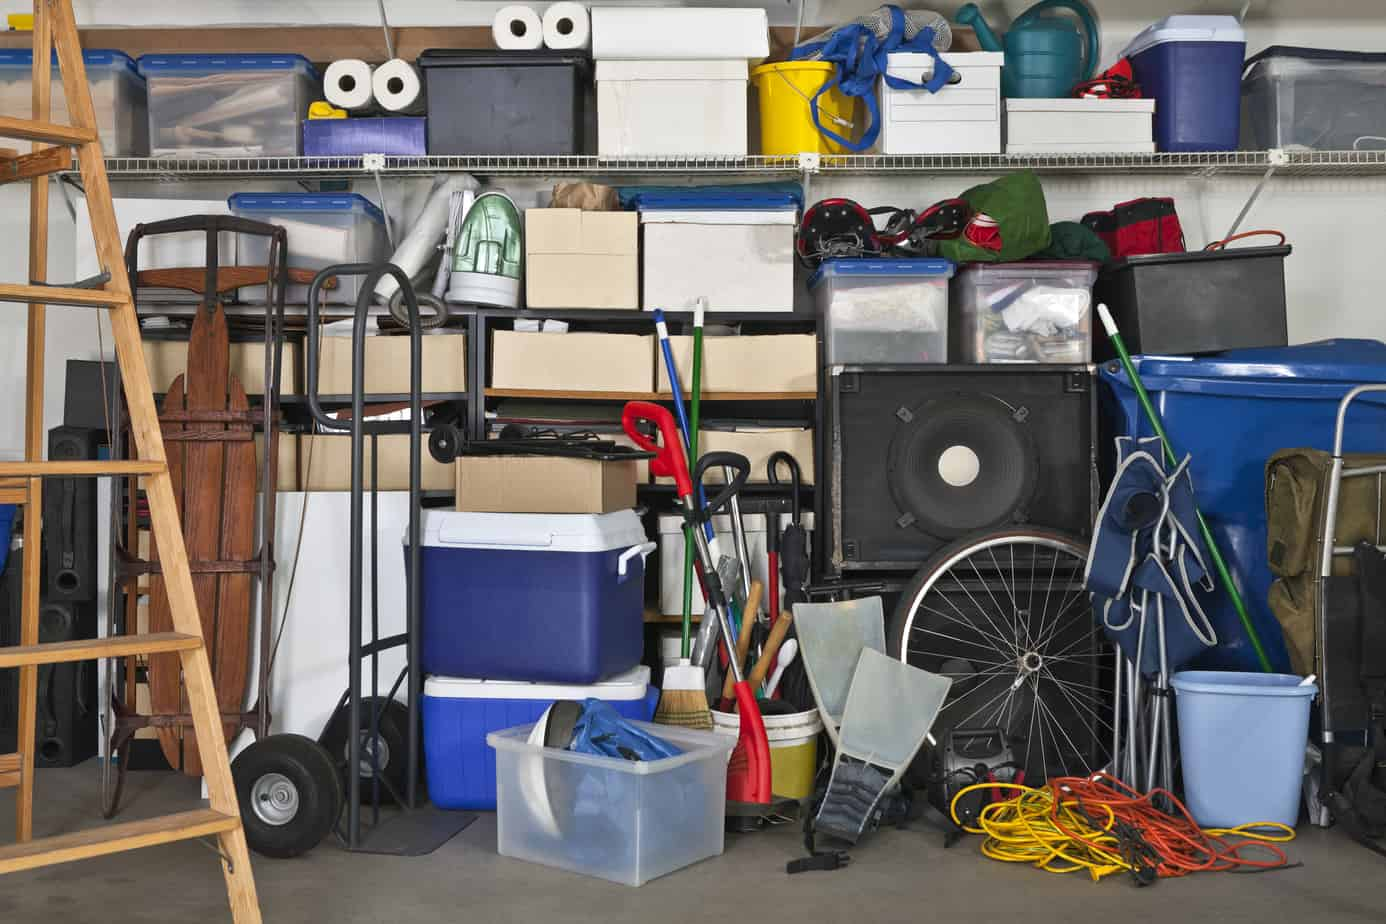 Overloaded suburban garage. Boxes, coolers, sporting gear and more.